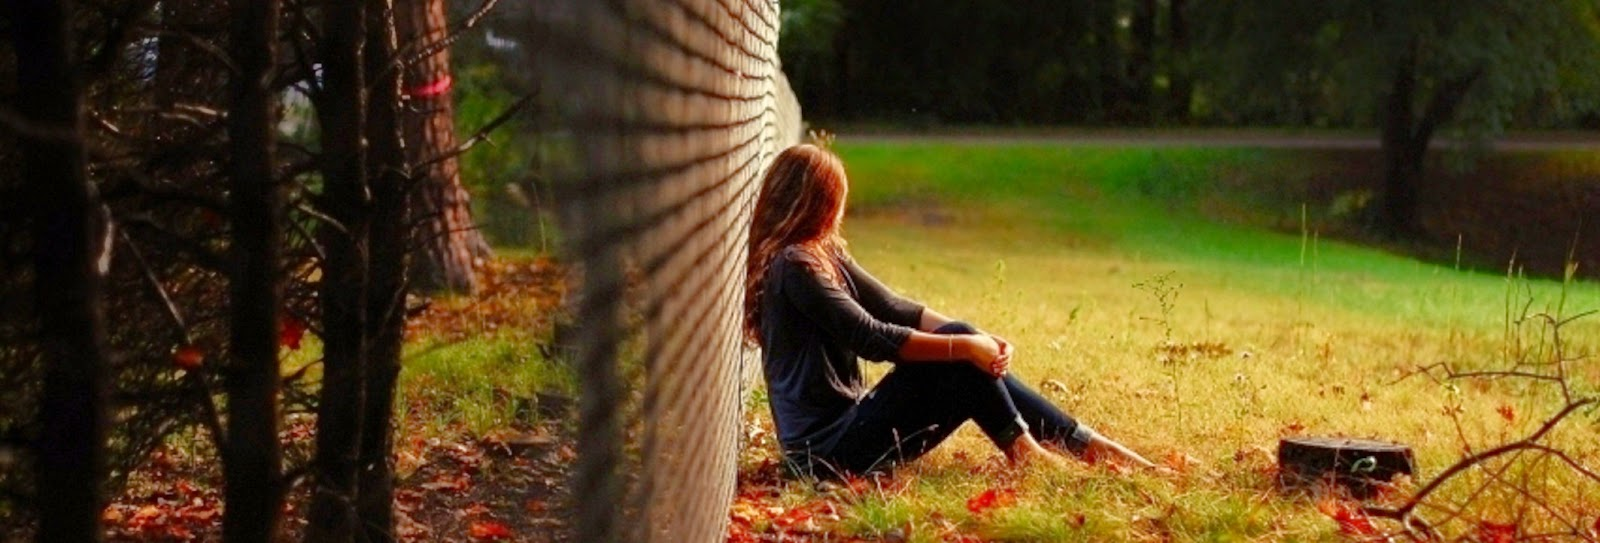 Lonely Girl Hd Wallpaper For Facebook Cover | All HD ...